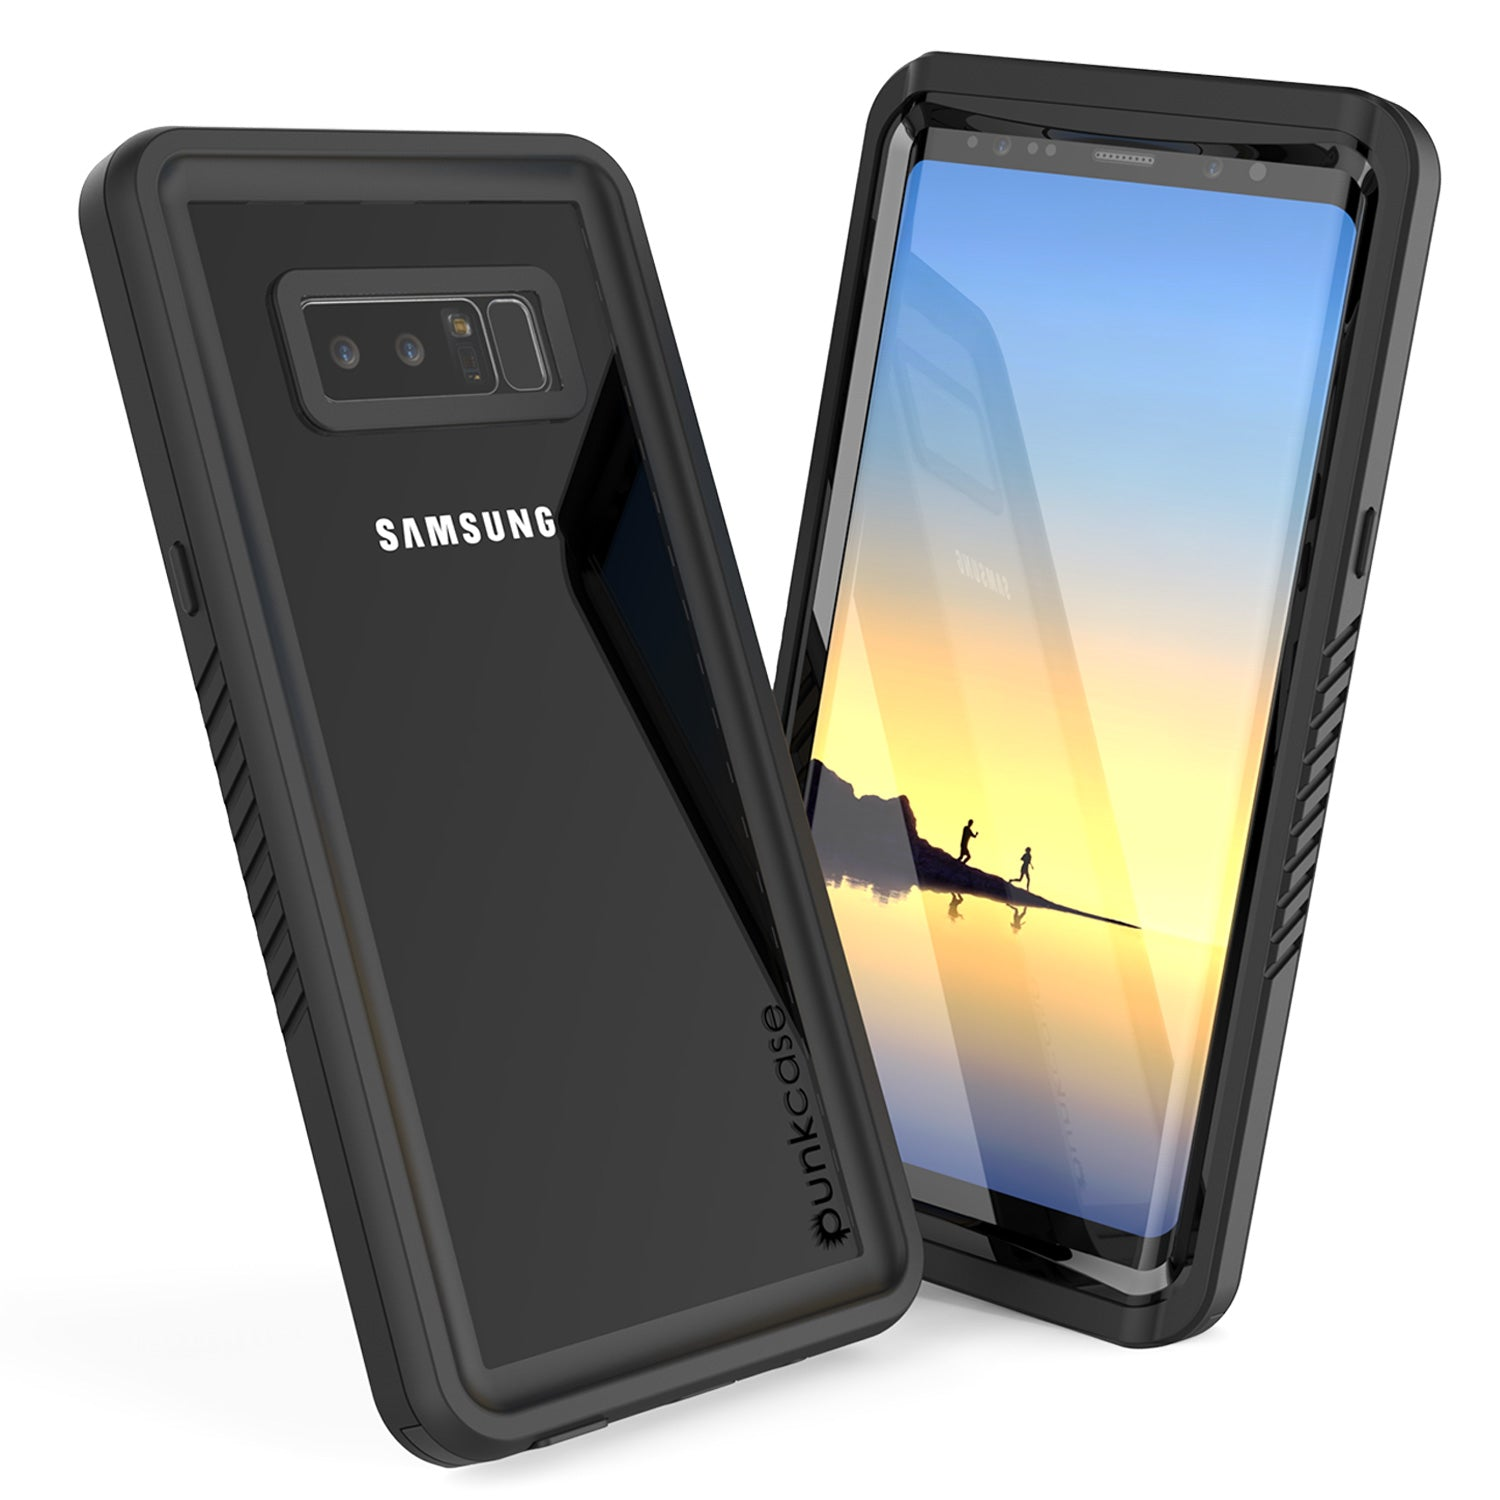 Galaxy Note 8 Anti-Shock Screen Protector Slim-Fit Case [Black]